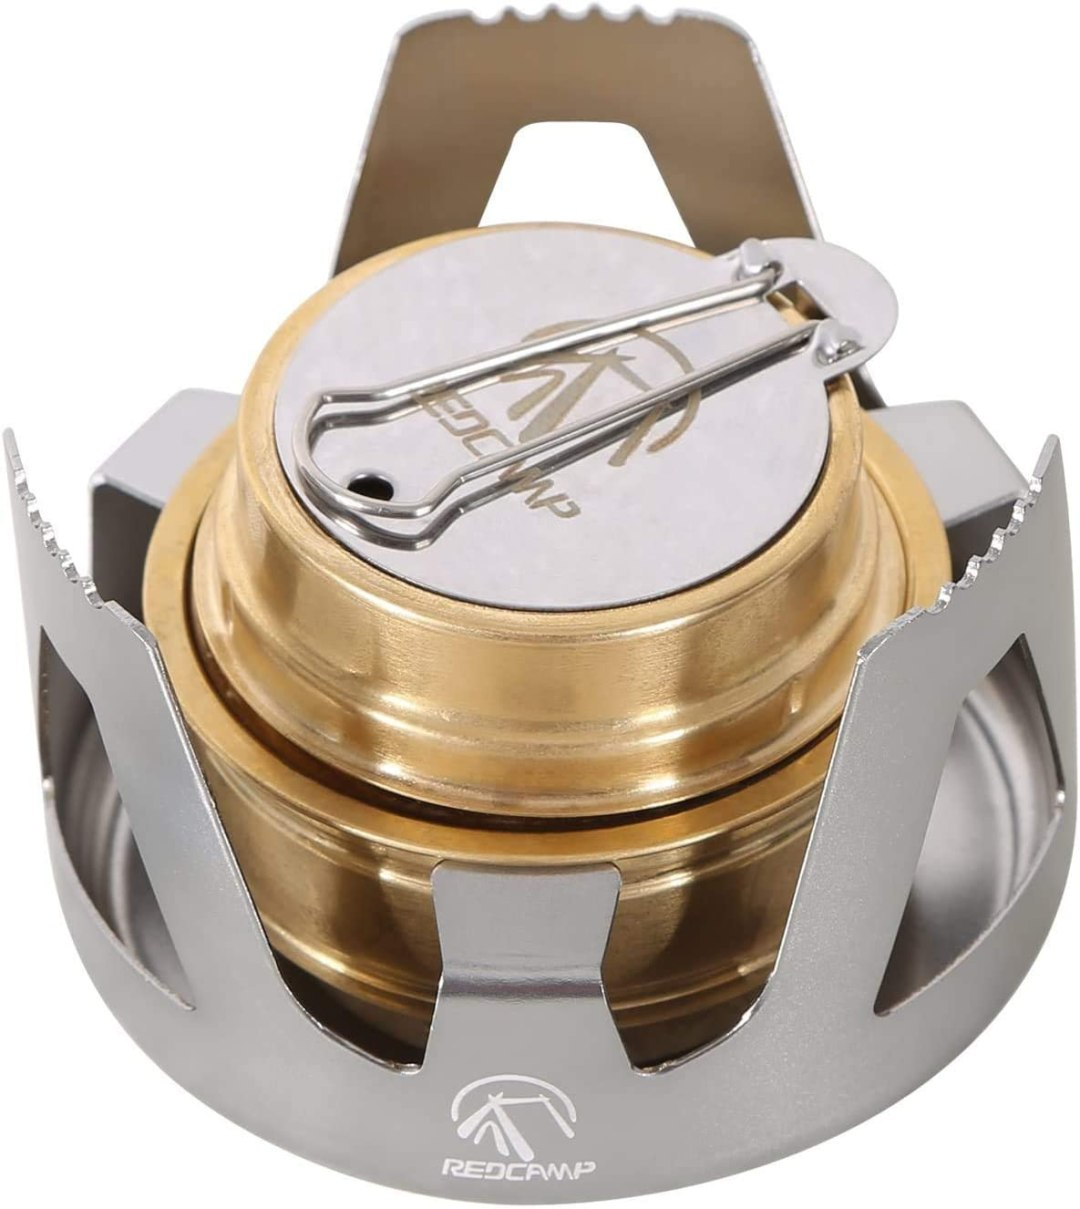 REDCAMP Alcohol Stove for Backpacking, Lightweight Brass Spirit Burner for Camping Hiking